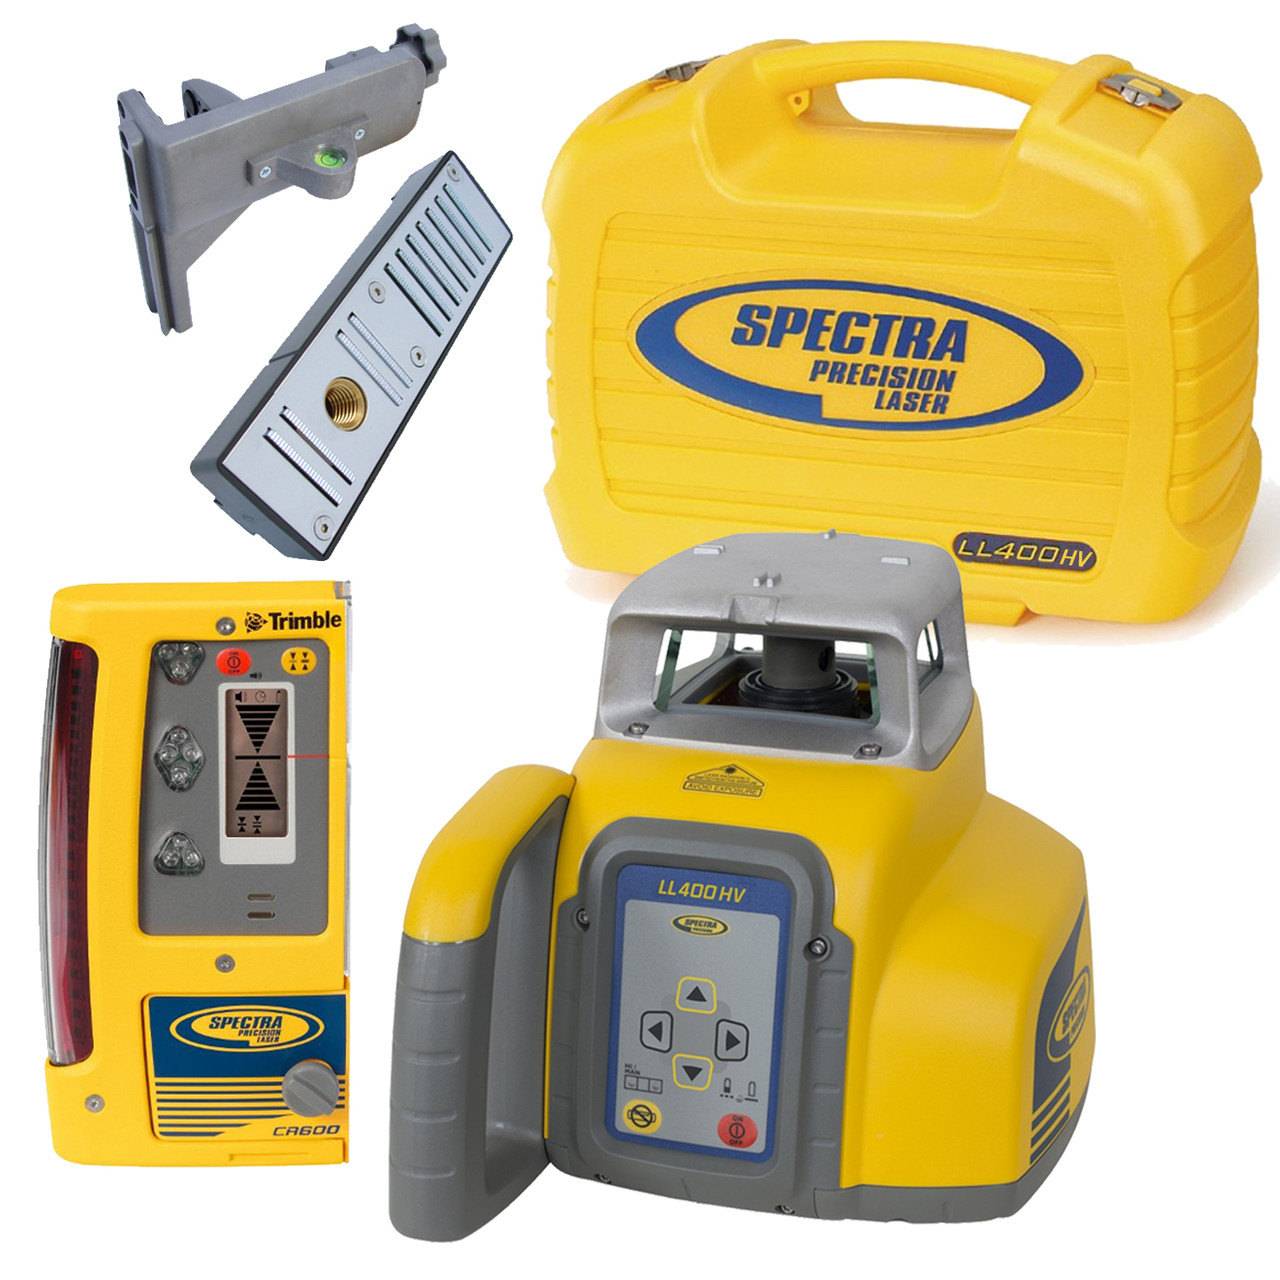 Spectra Precision Ll400hv 10 Laser Package With Cr600